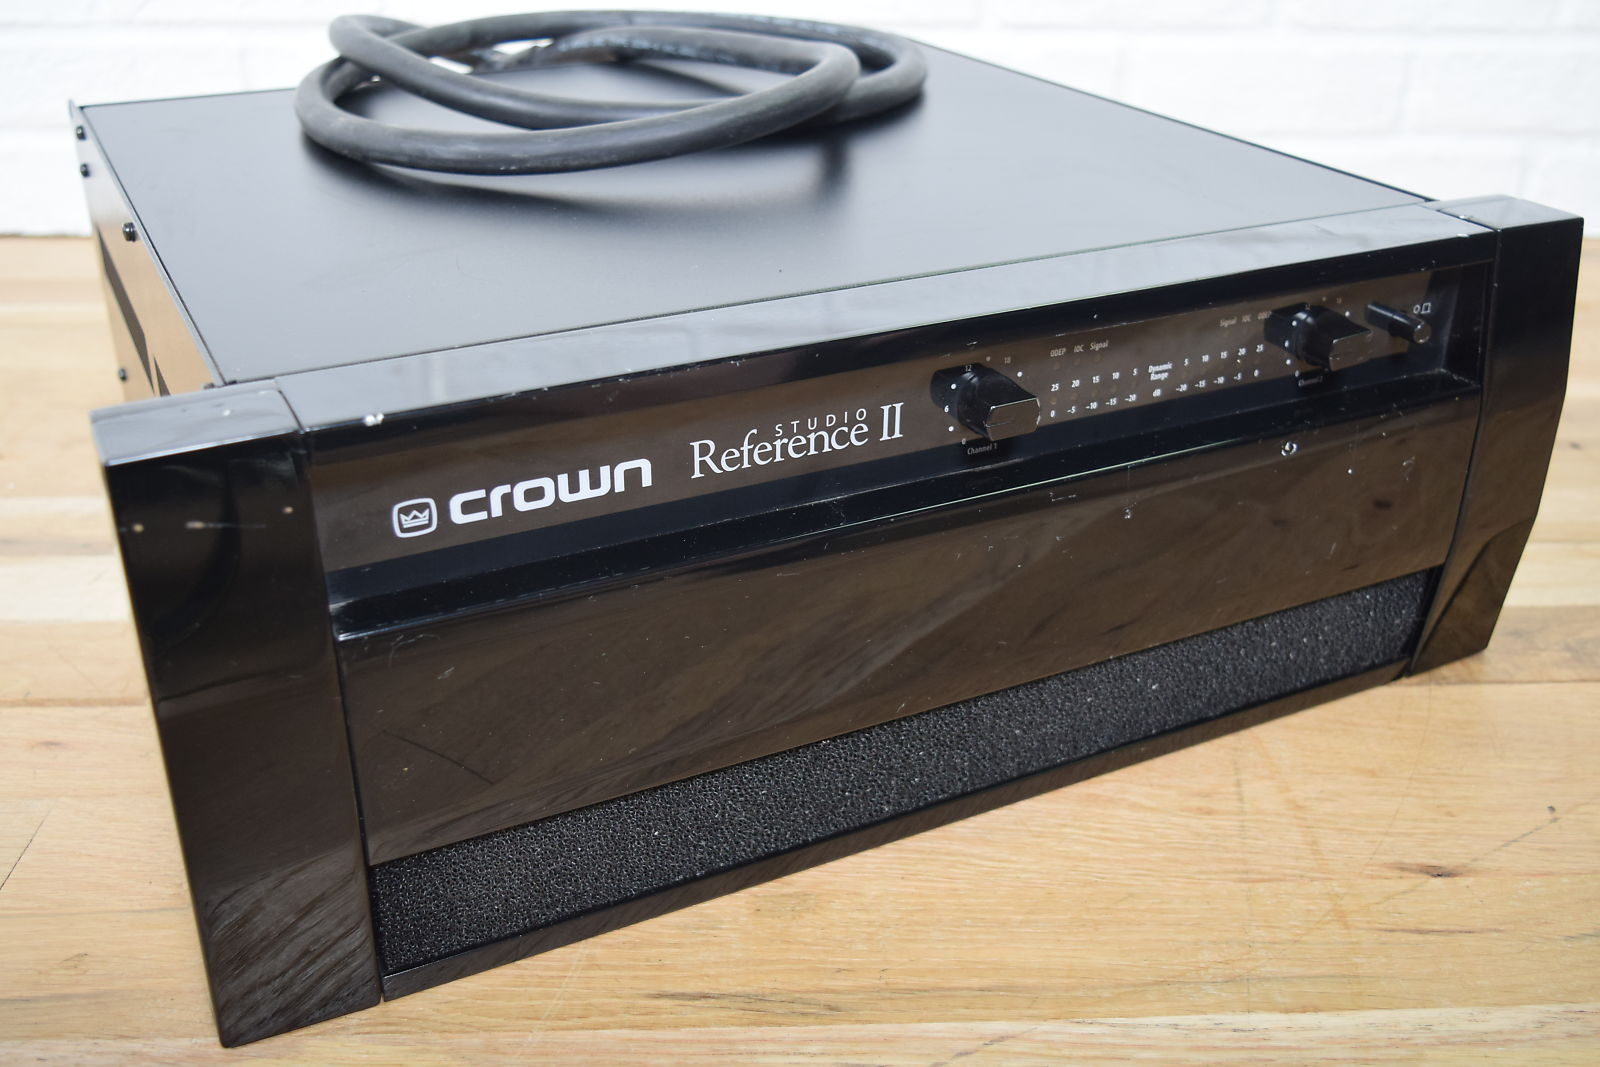 crown studio reference ii stereo power amplifier excellent used amp for sale. Black Bedroom Furniture Sets. Home Design Ideas